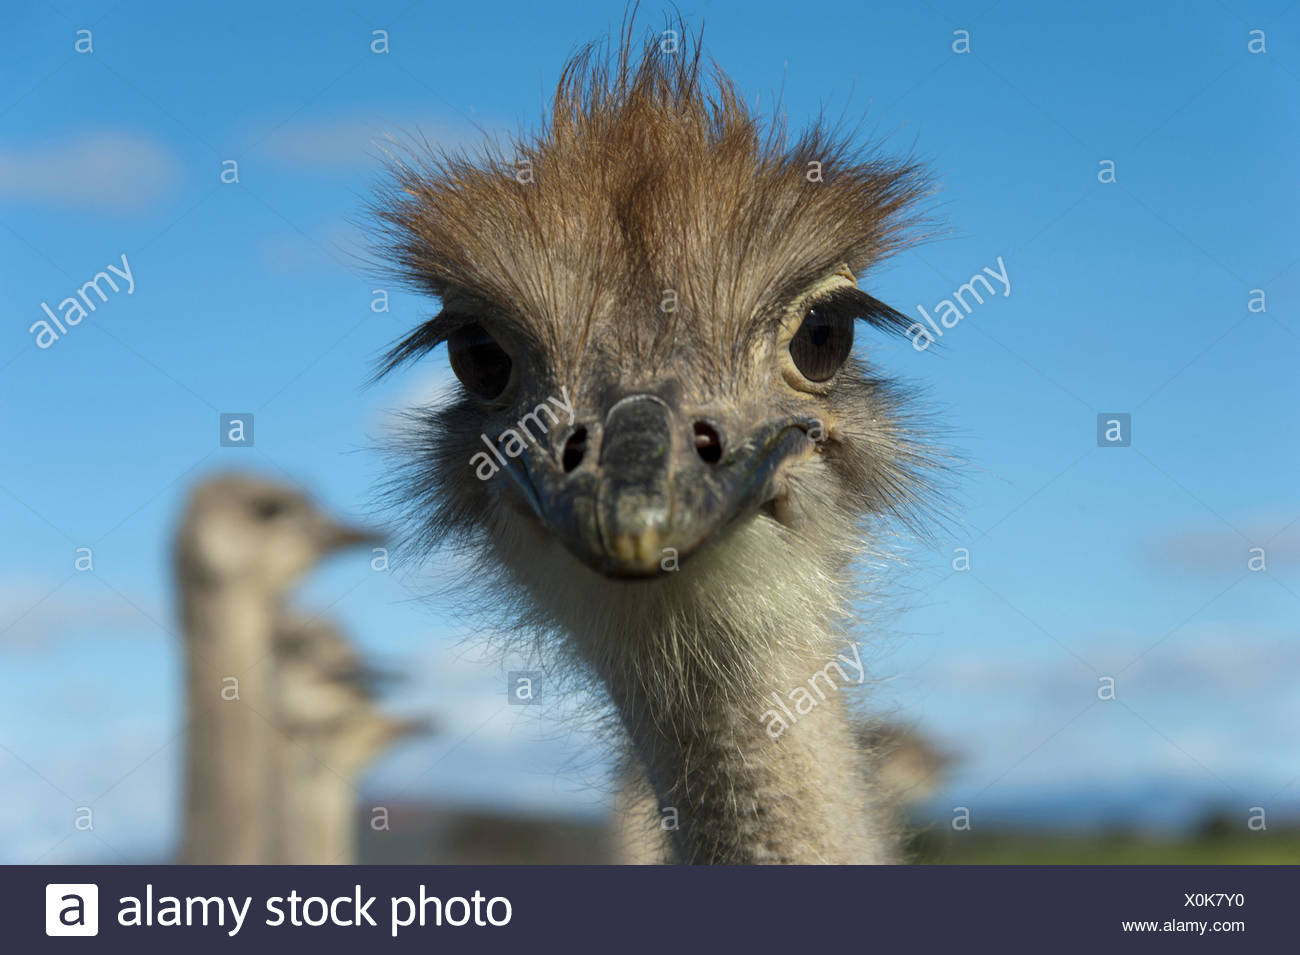 ostrich (Struthio camelus), portrait, South Africa, Western Cape, Oudtshoorn - Stock Image